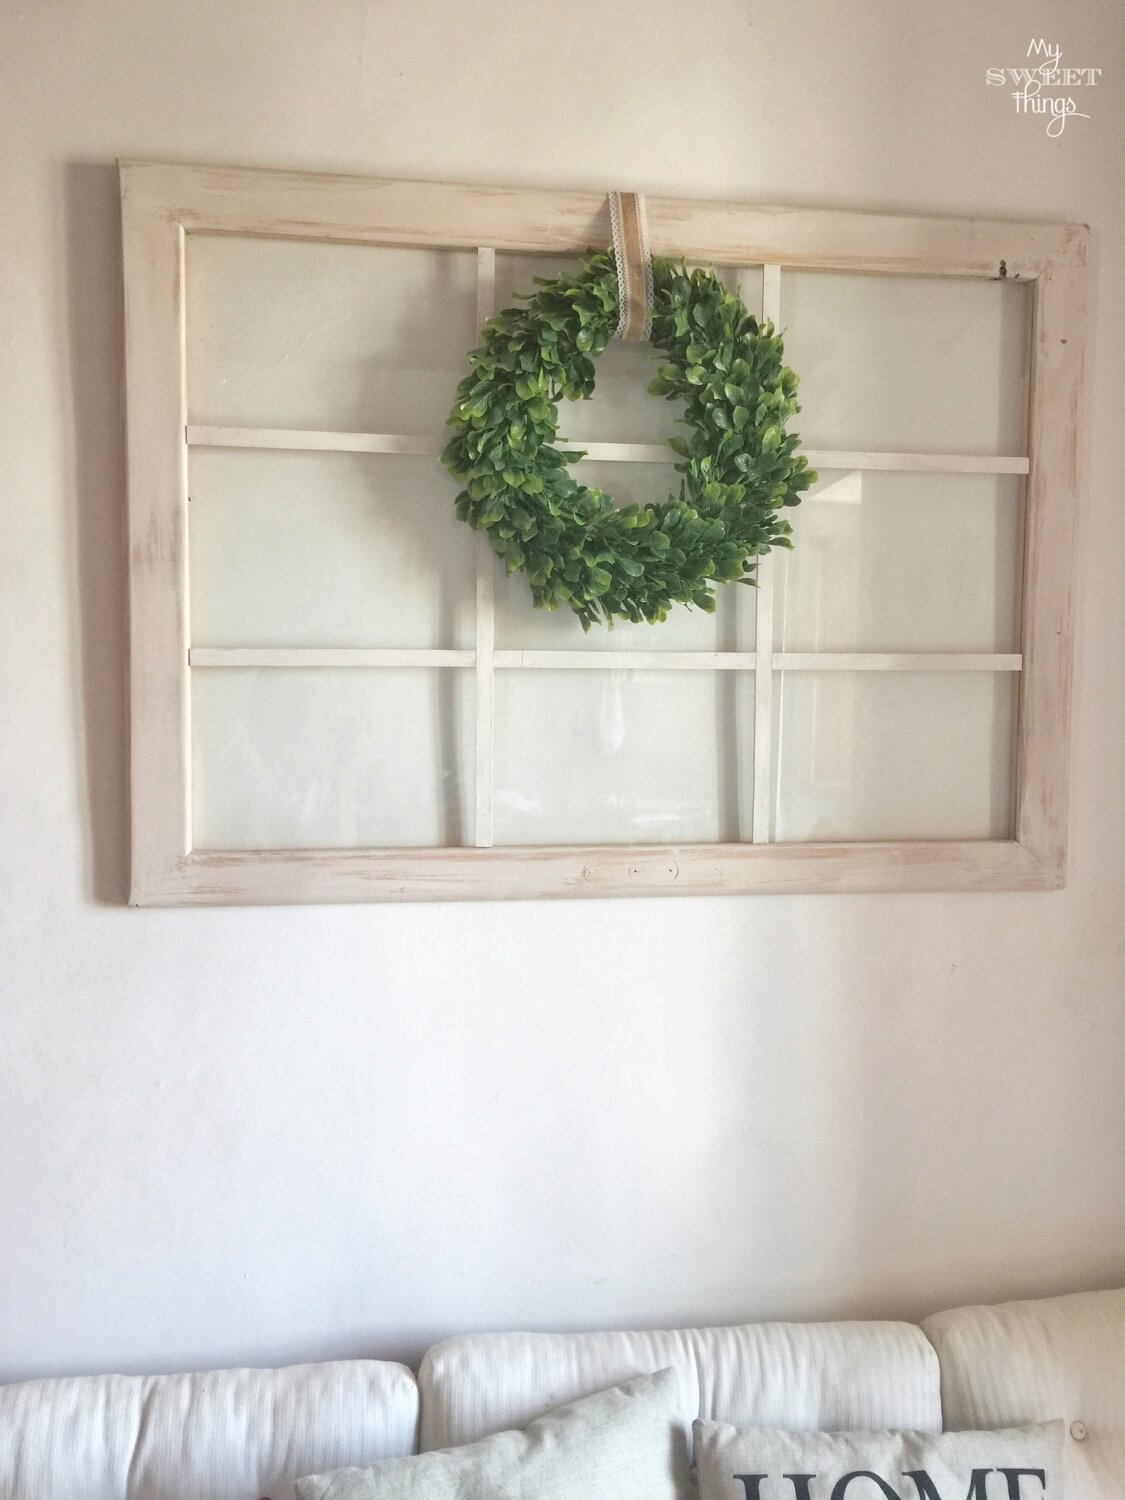 Old window repurposed into home decor · Via www.seethings.net